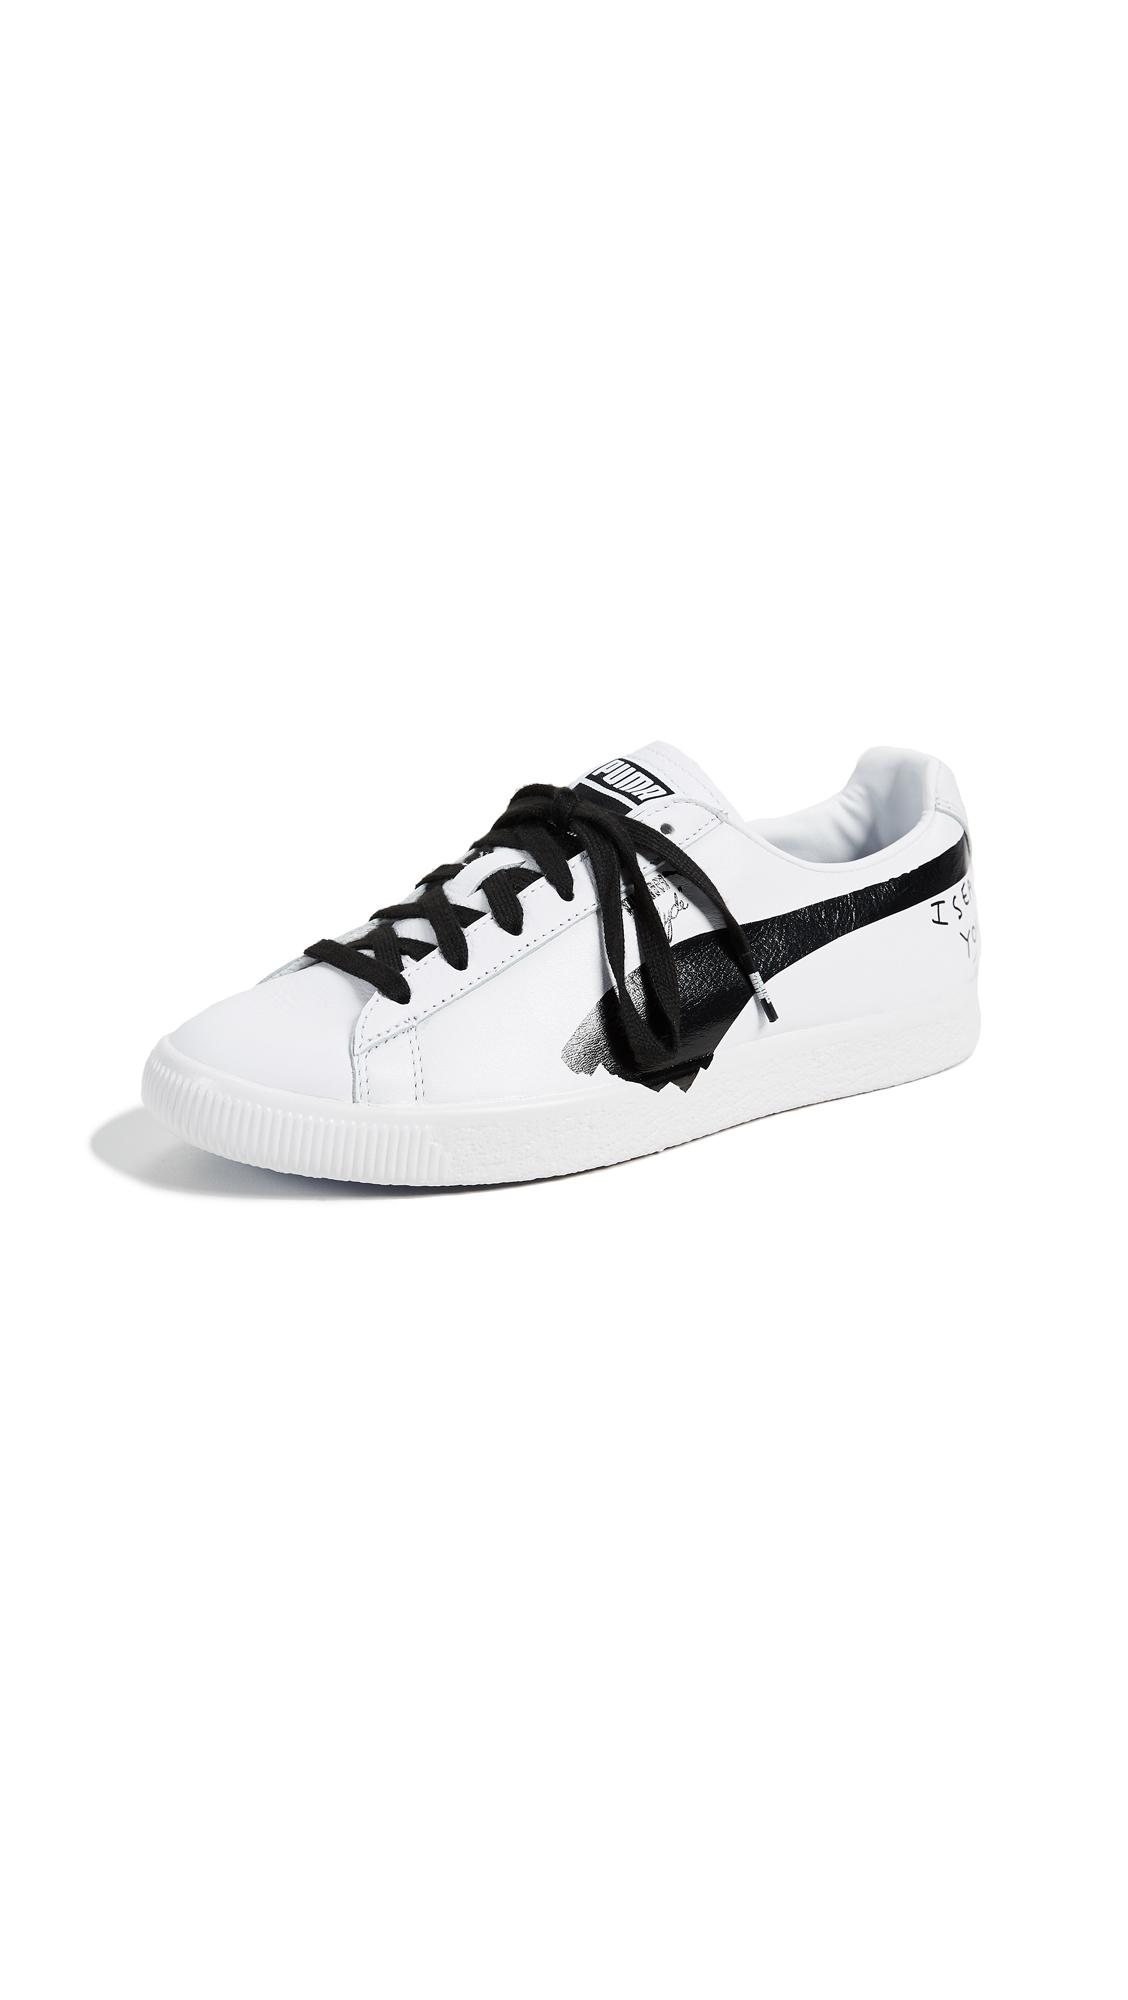 premium selection bc602 9e952 Puma X Shantell Martin Women's Clyde Leather Lace Up Sneakers In White/  Black